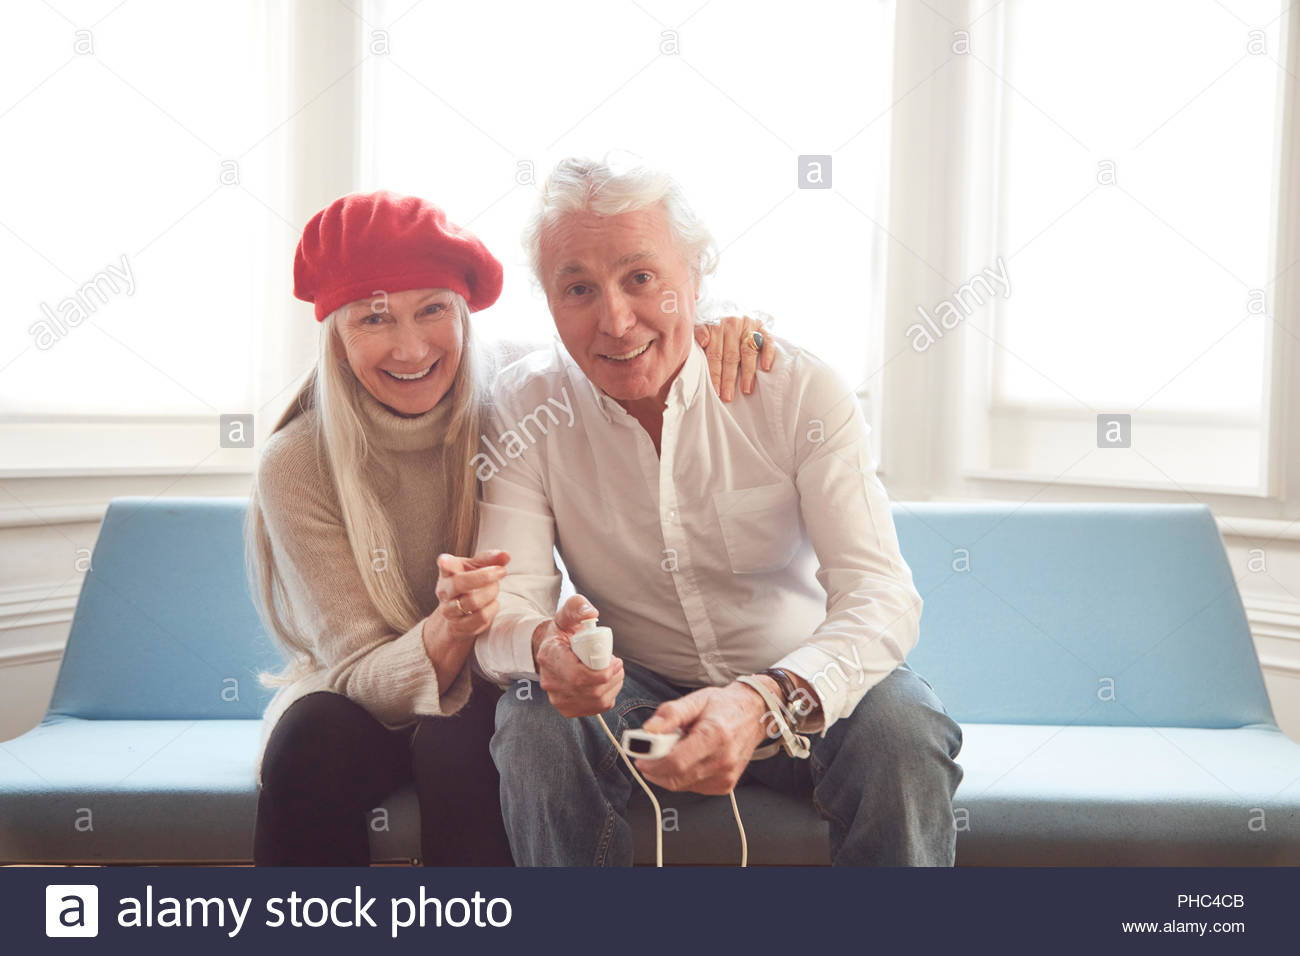 Senior couple playing video games Photo Stock